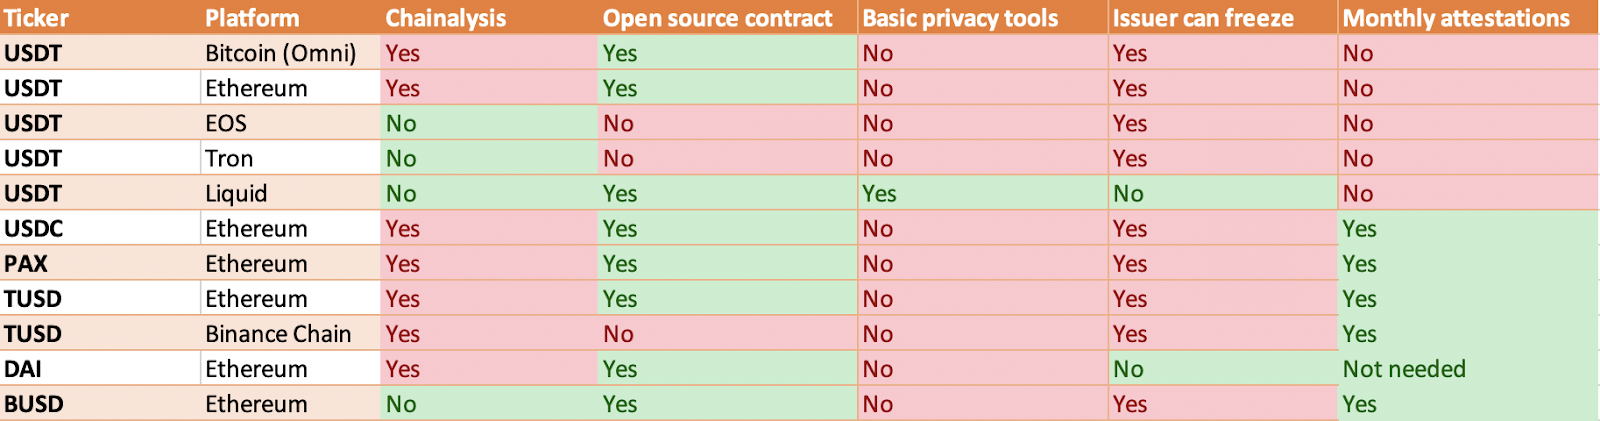 Privacy features of various stablecoins